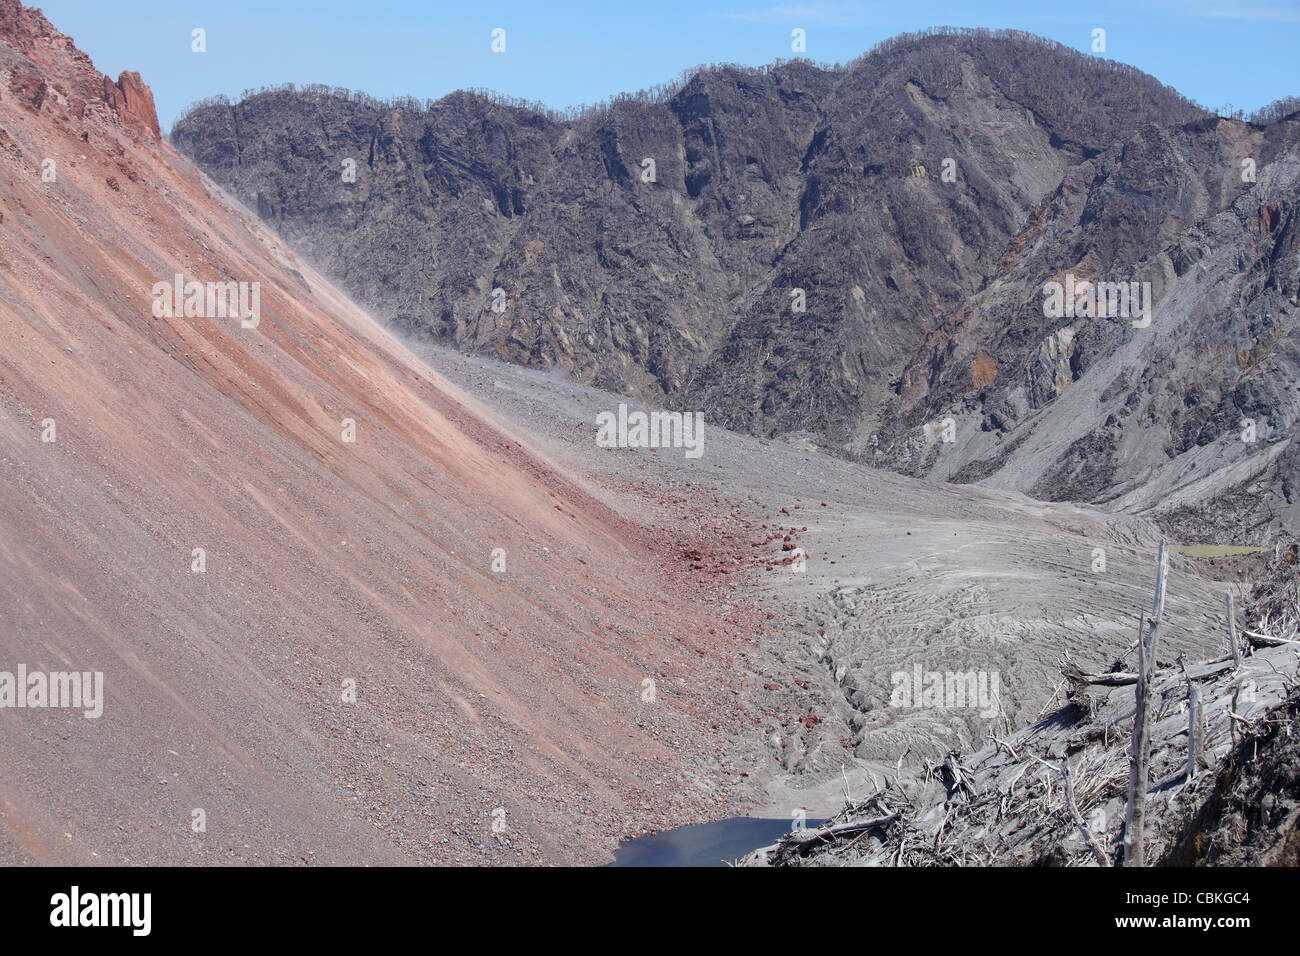 December 6, 2009 - Lava Dome rising from floor of summit crater of Chaiten volcano, Chile. - Stock Image